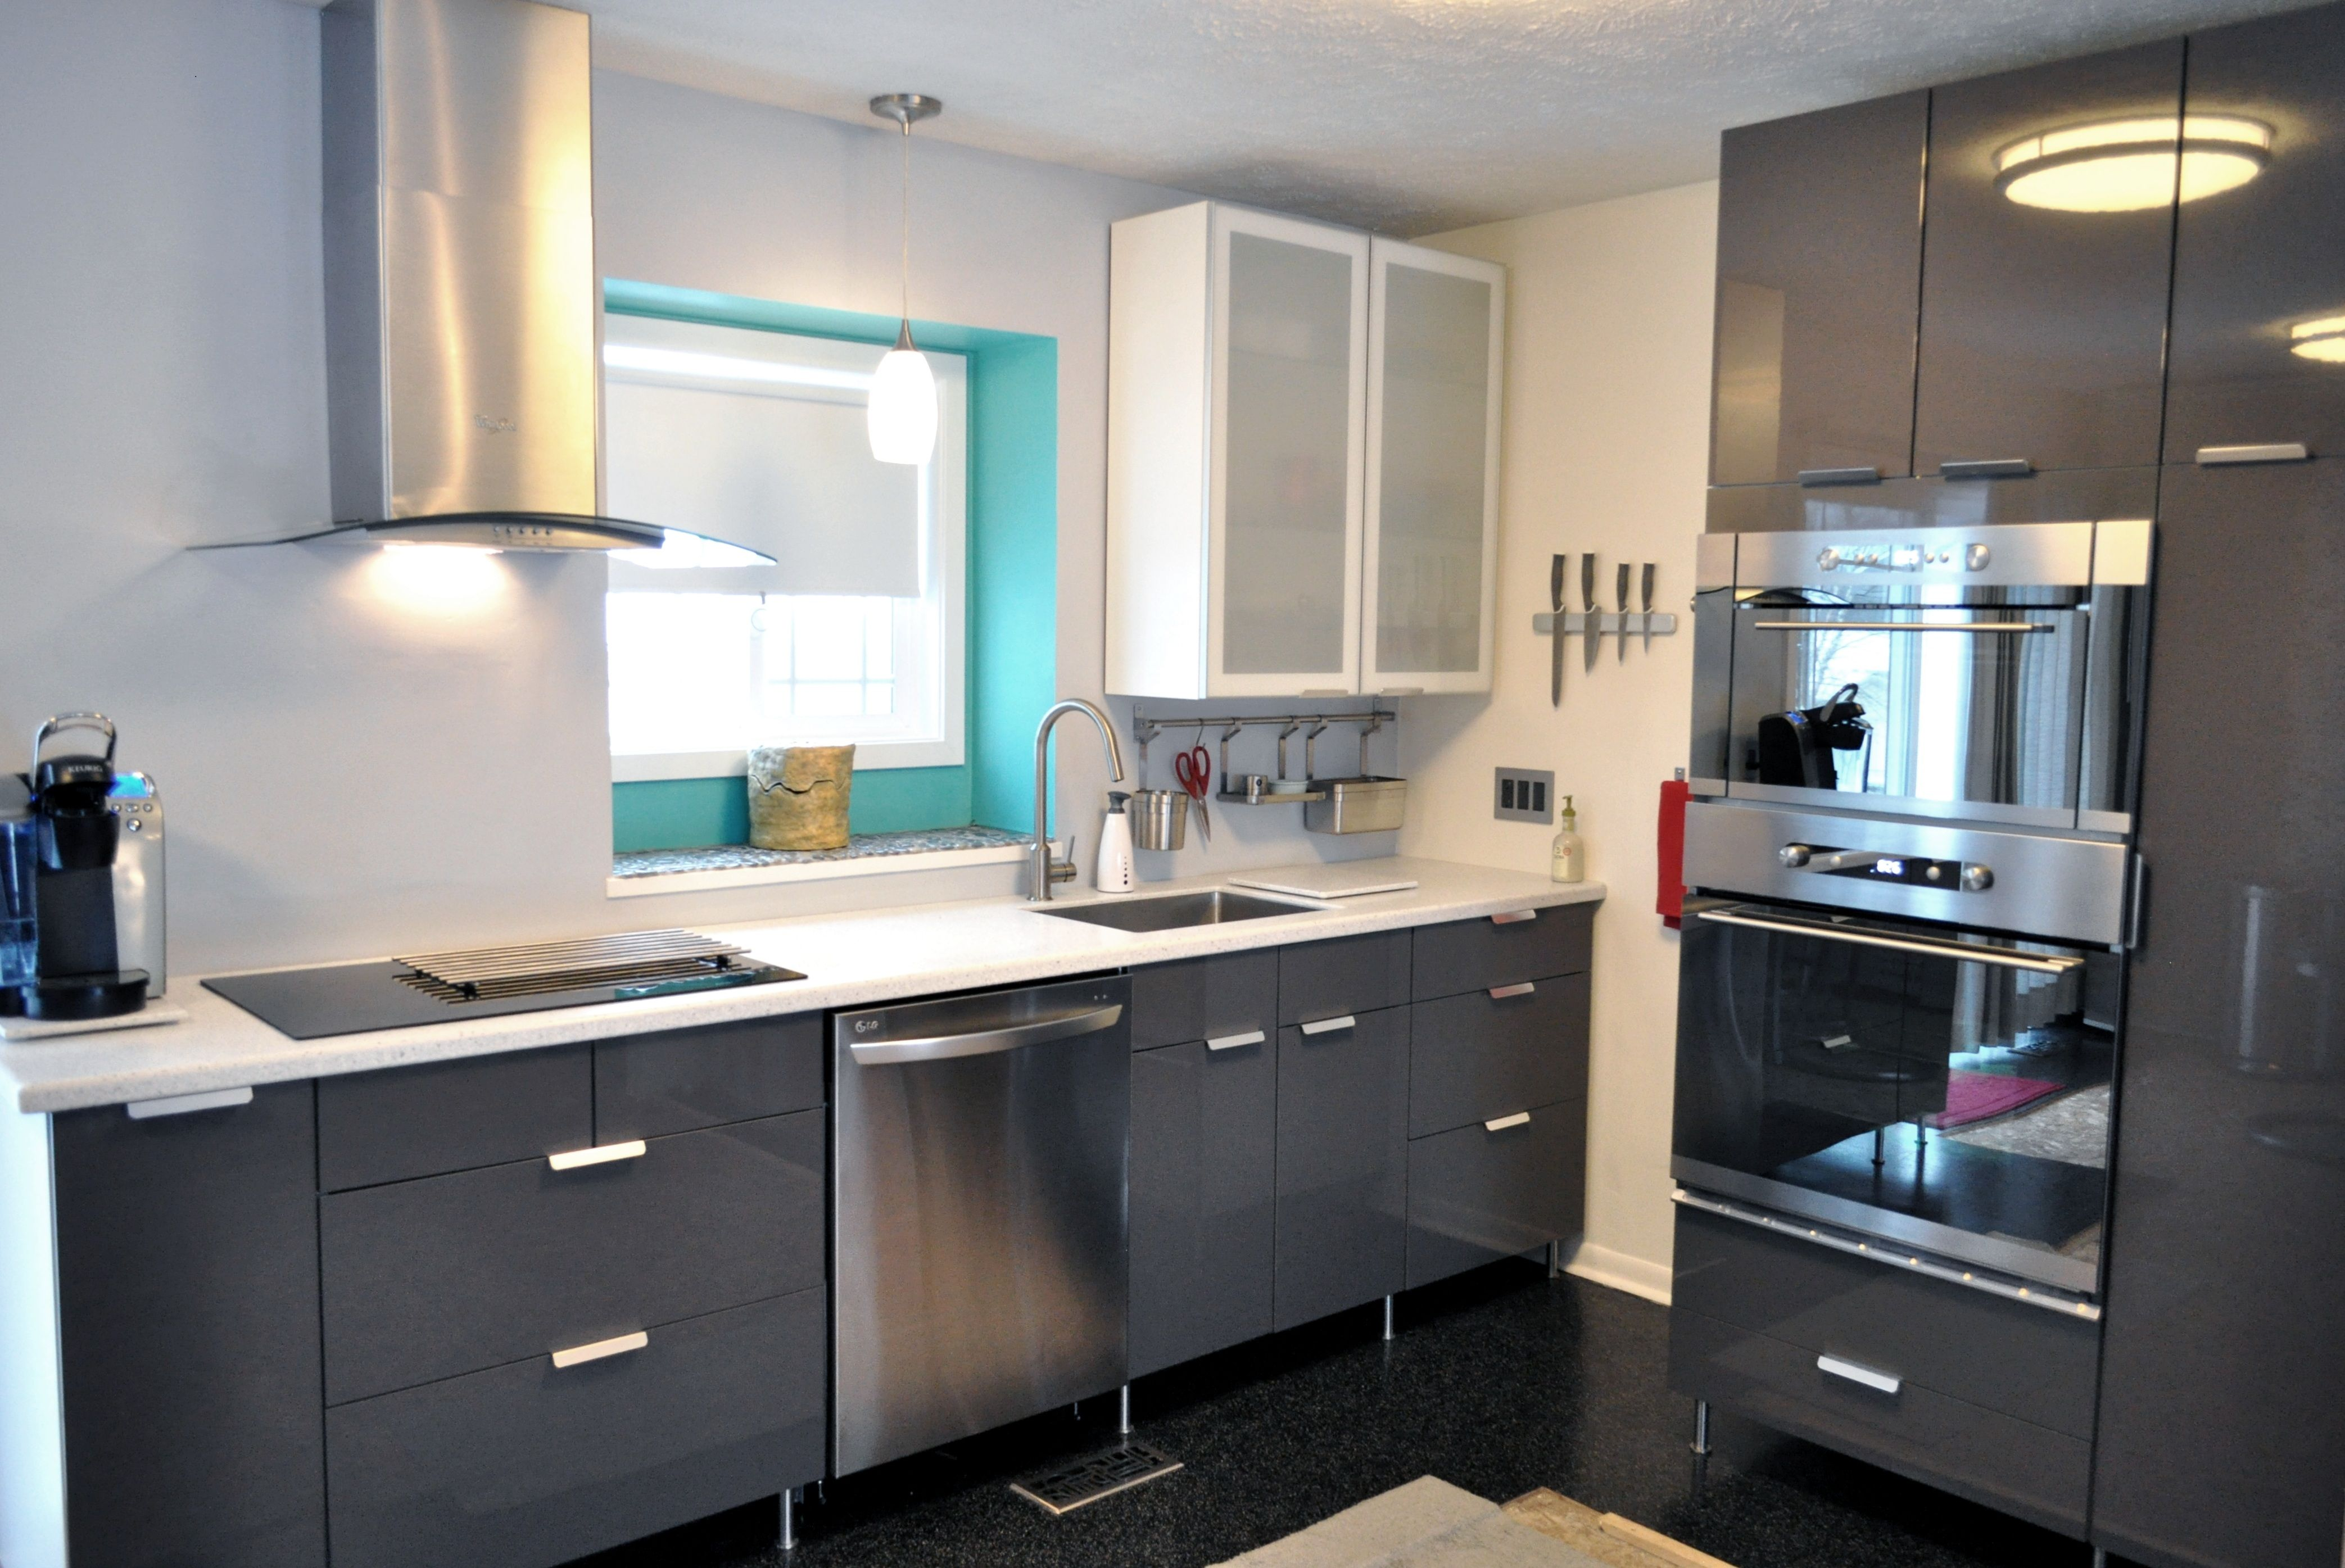 kitchen cabinets with legs island sink and dishwasher nutid built in oven microwave induction